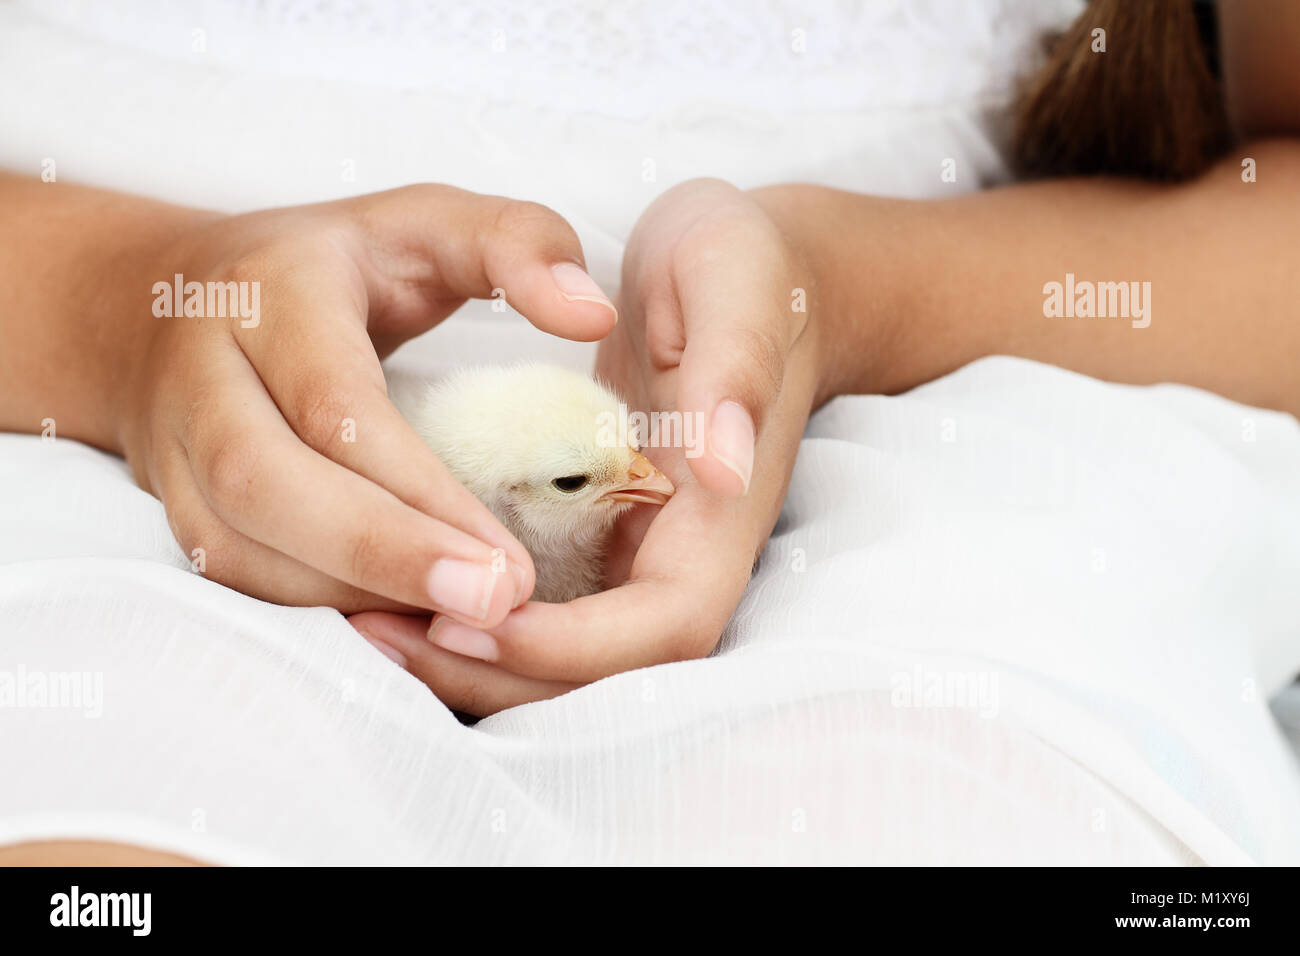 Little girl holds a white Brahma chick that is just days old. - Stock Image